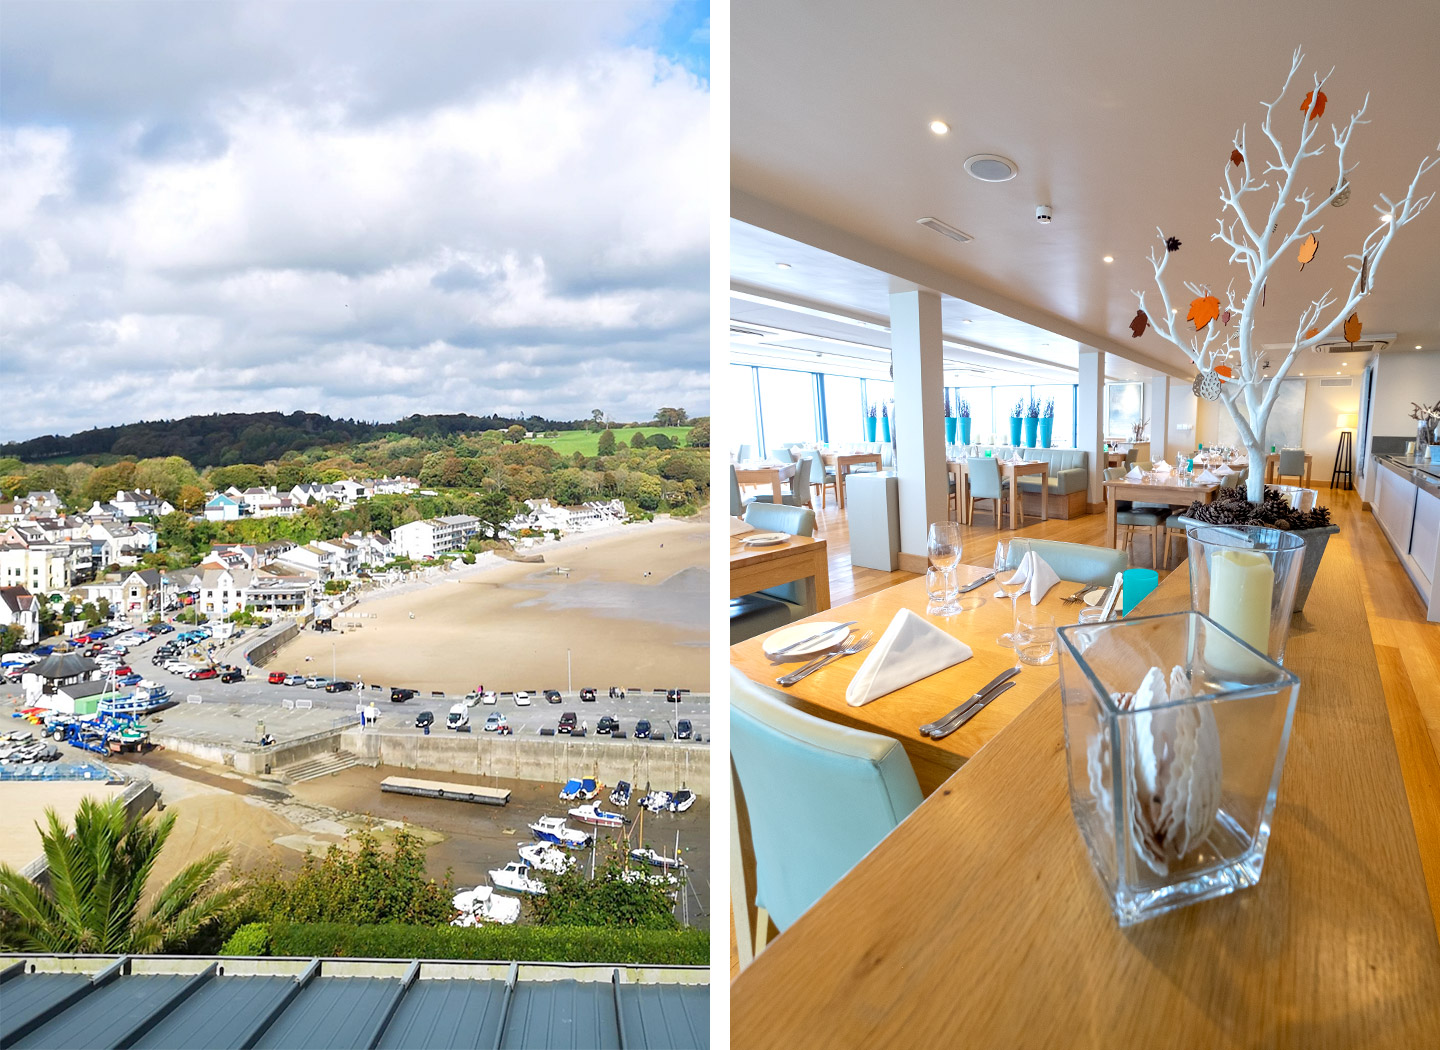 The St Brides Spa Hotel in Saundersfoot, South Wales